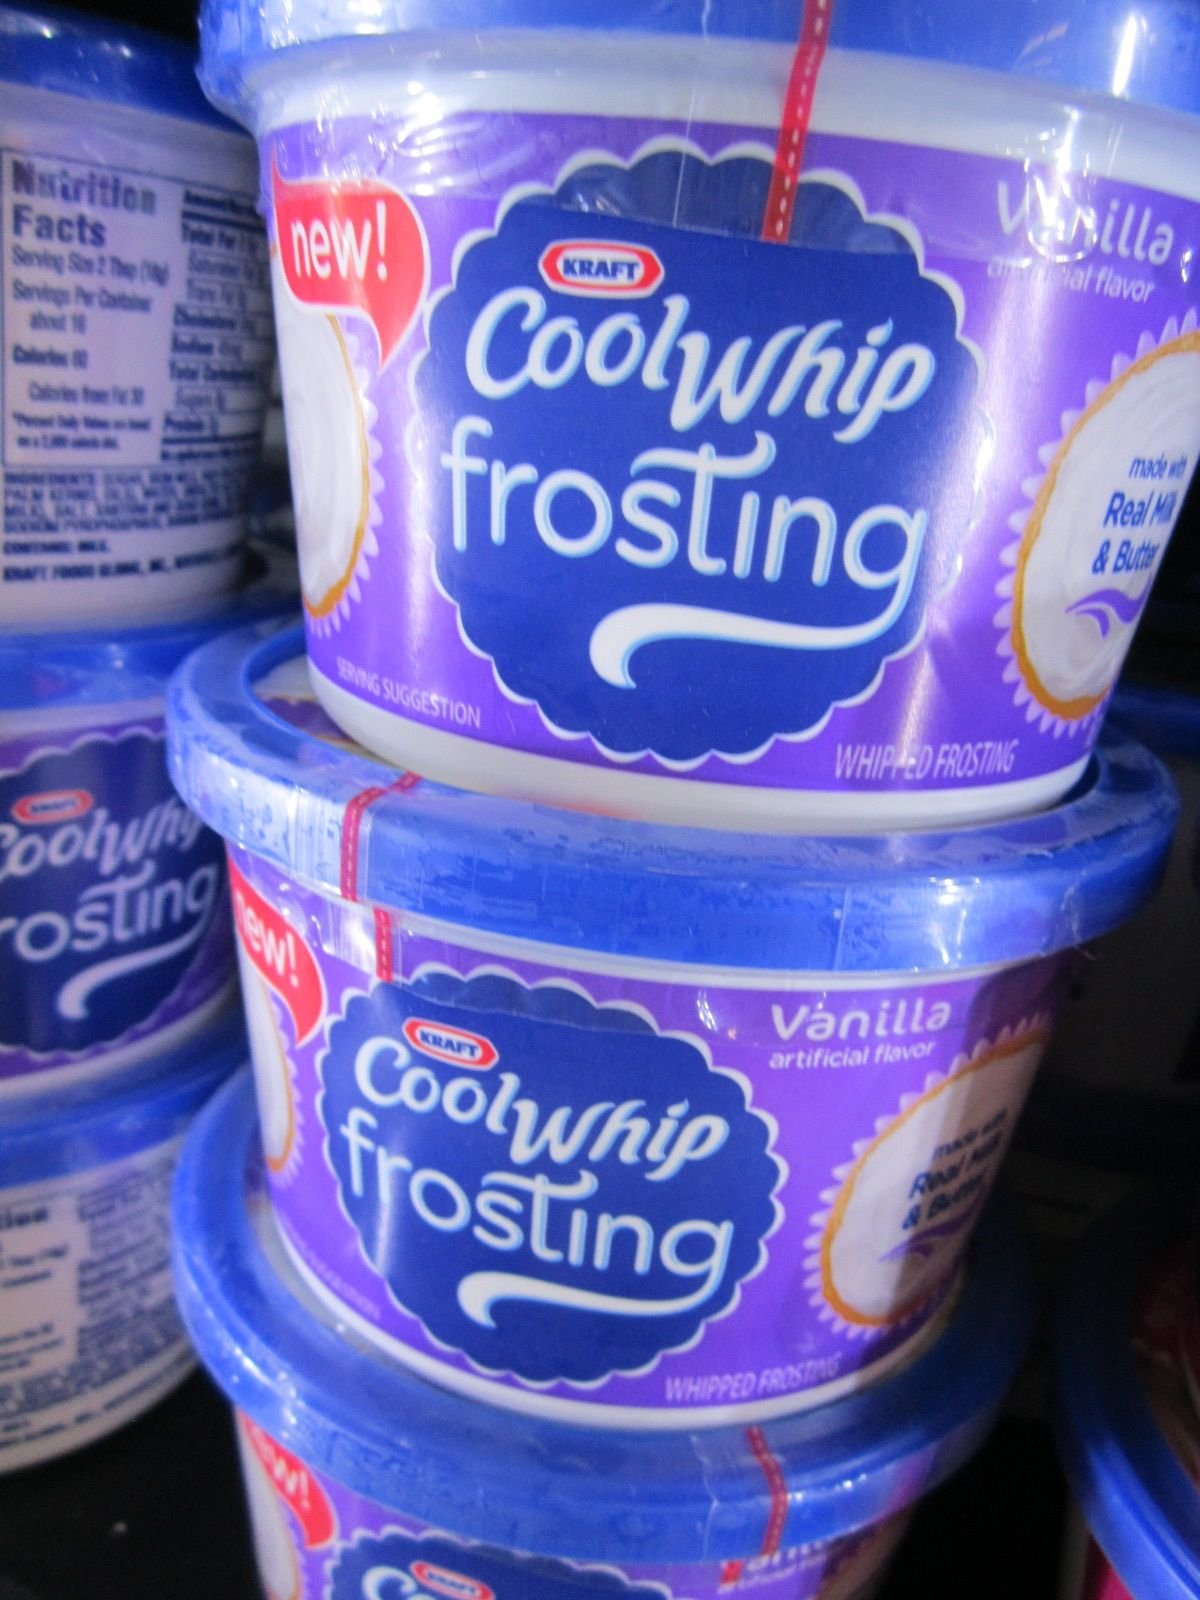 Coupon for cool whip frosting